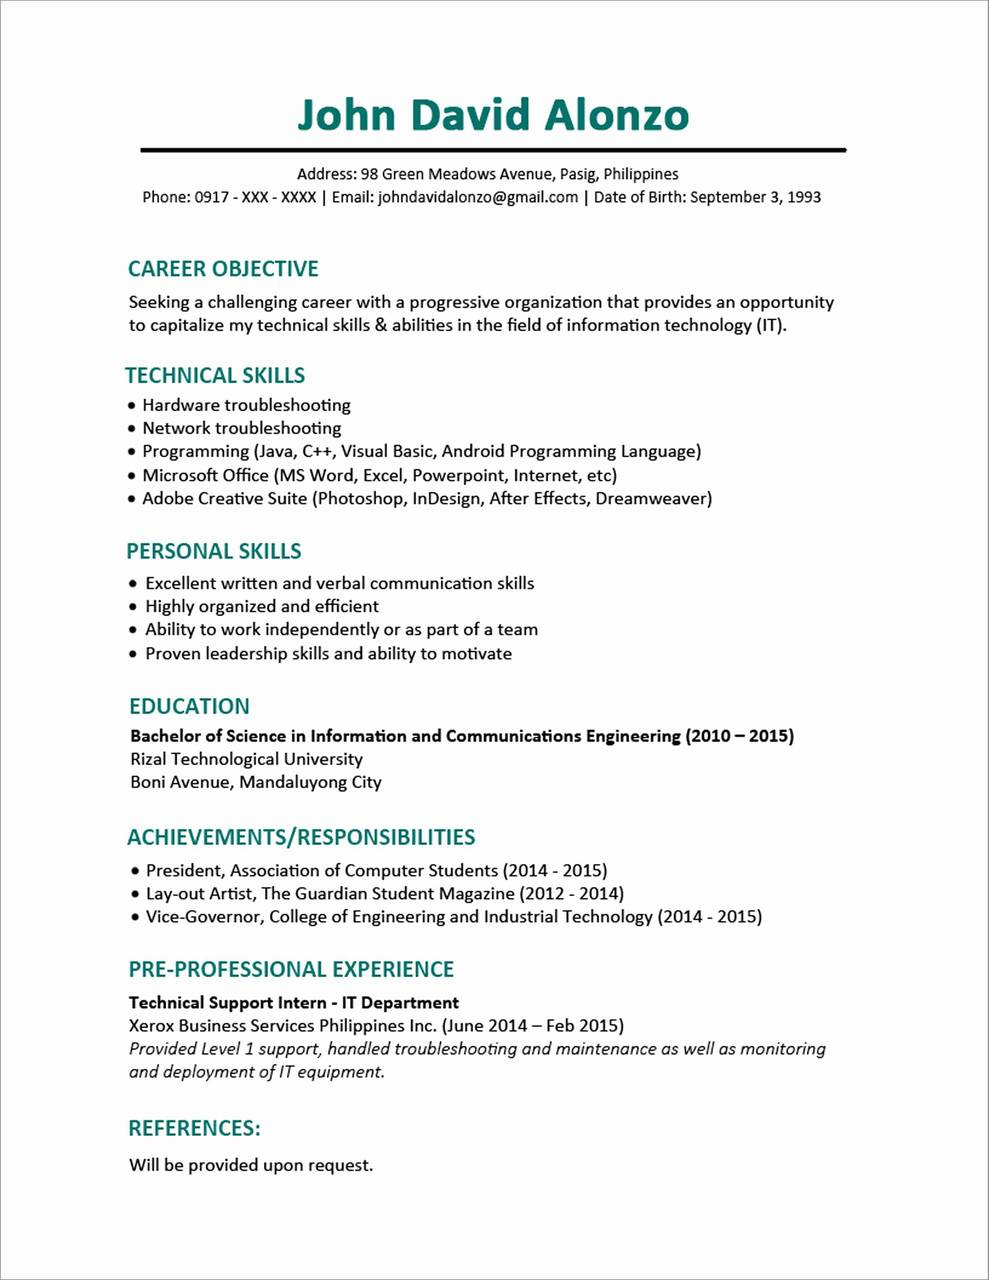 Resume Magic Trade Secrets Of A Professional Resume Writer Pdf - Resume Magic Resume Magic Choice Image Resume format Examples 2018